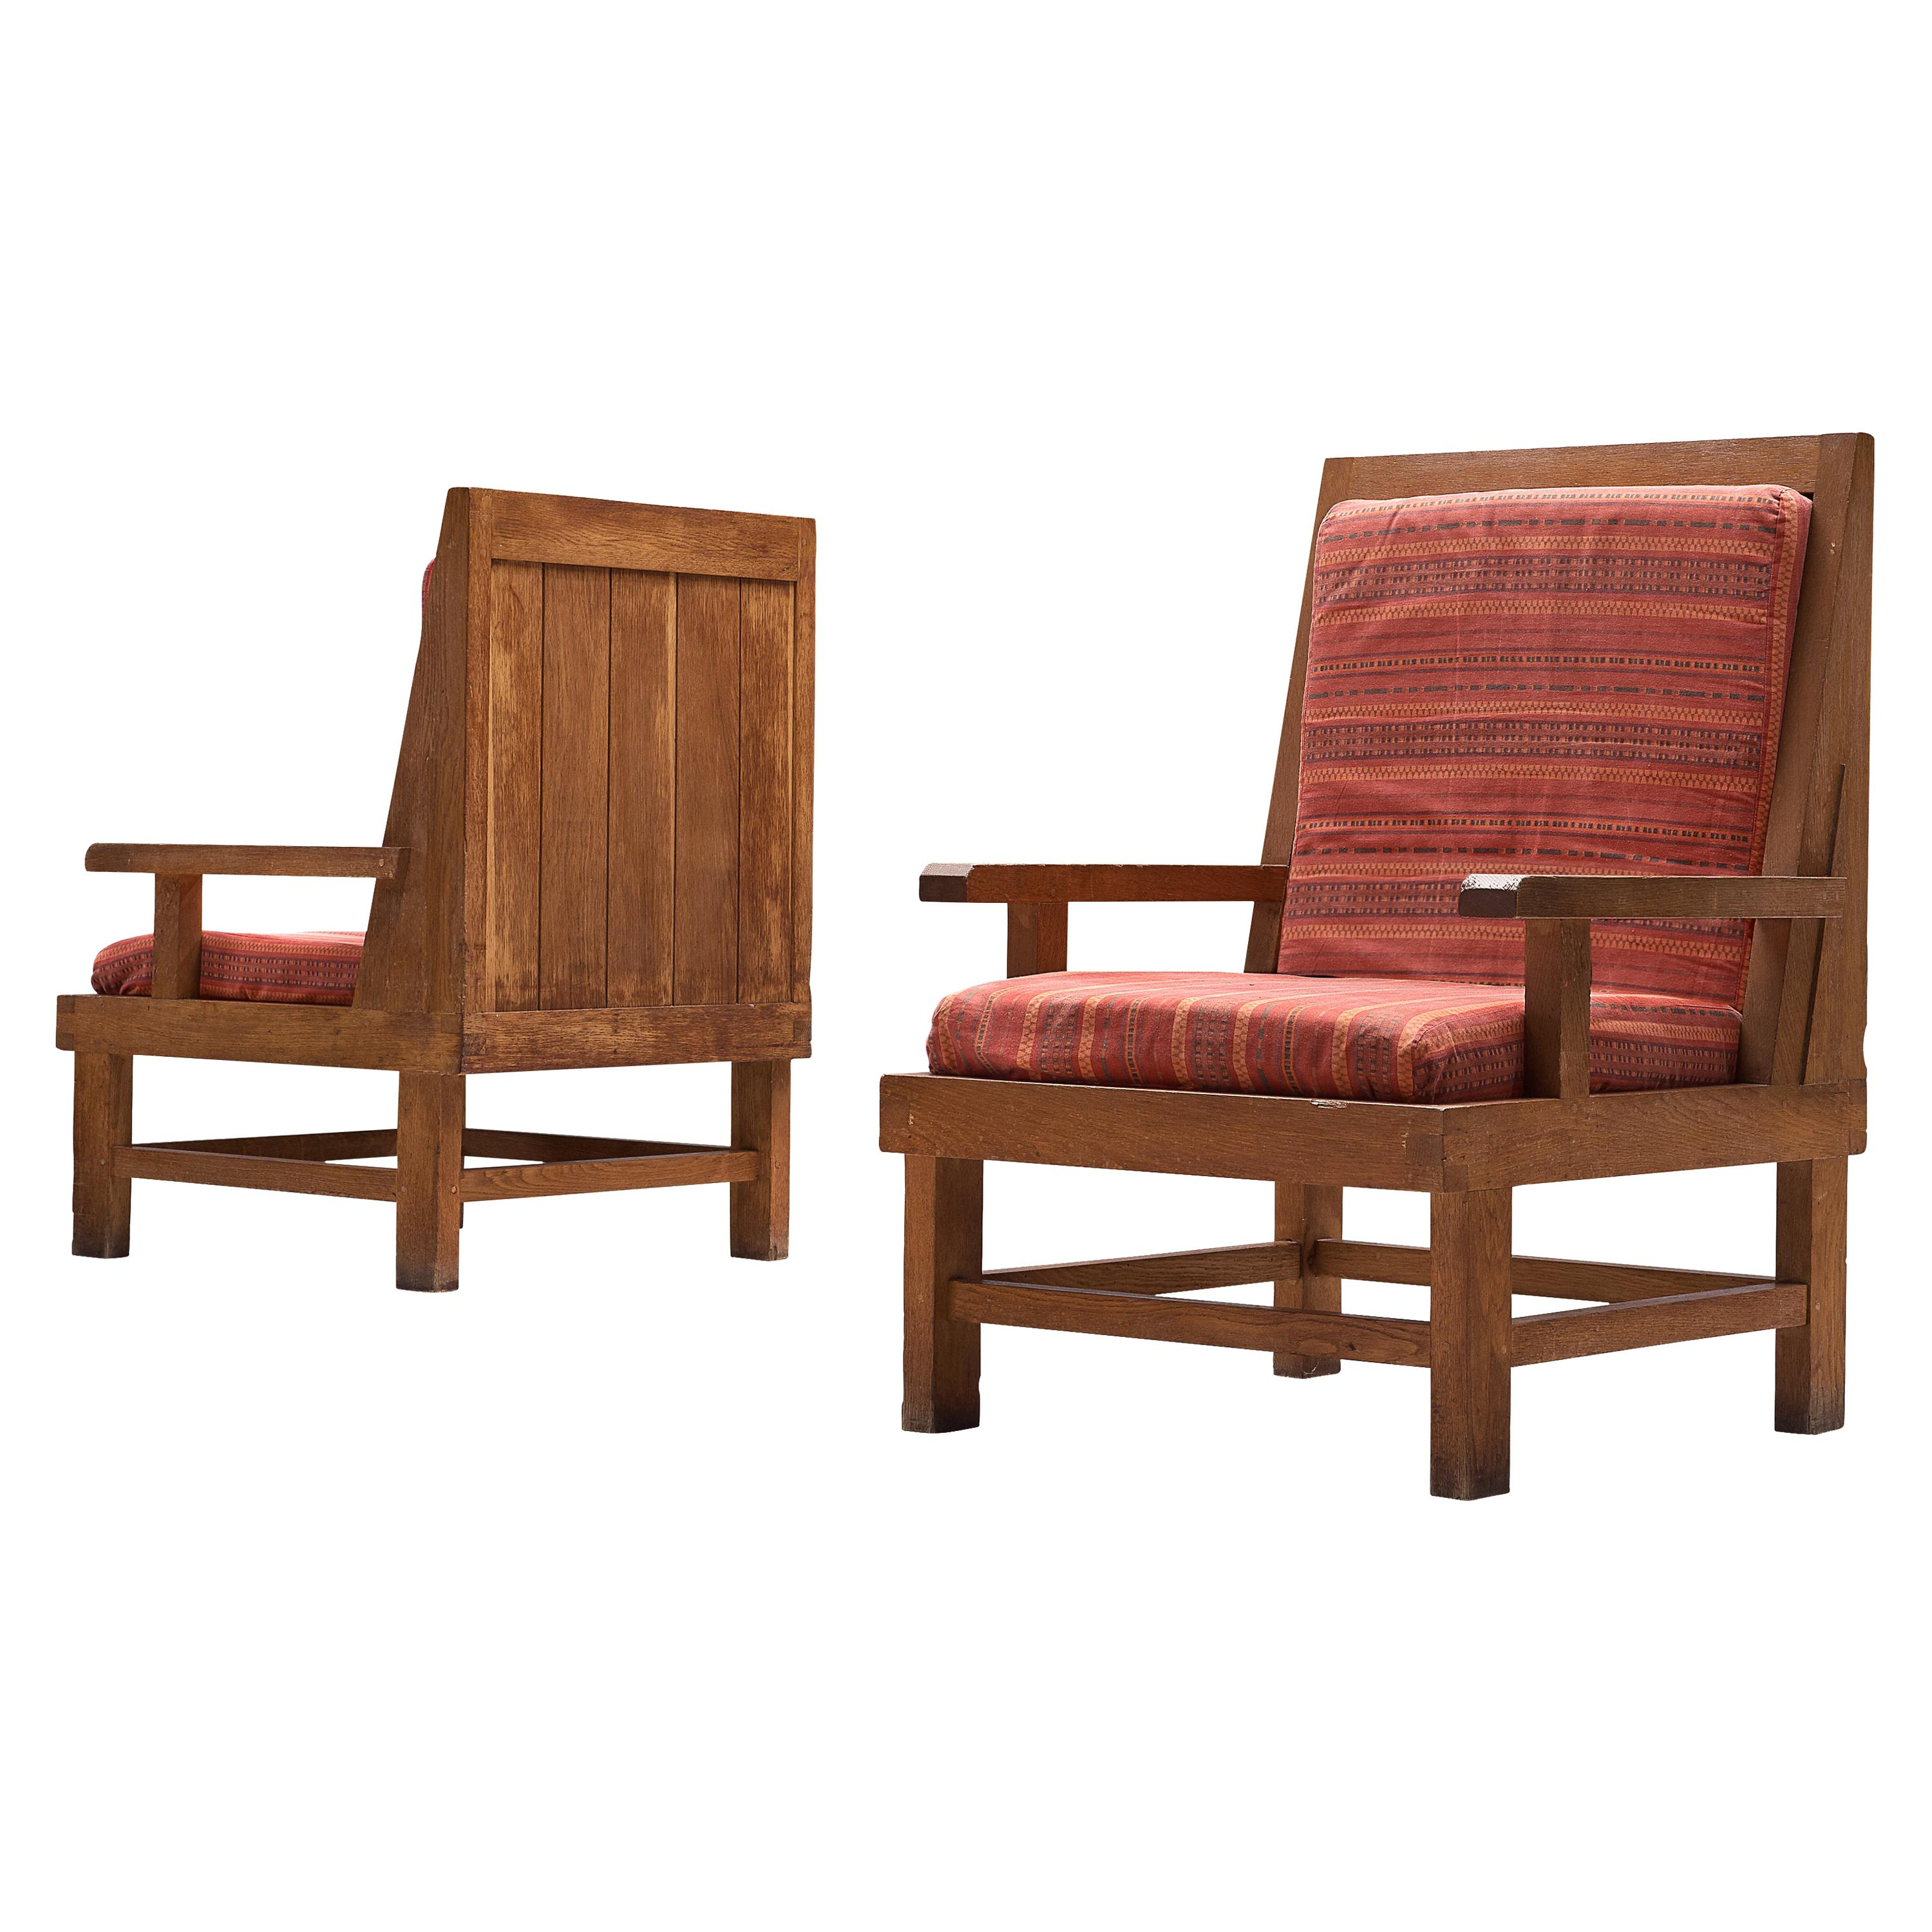 Pair of French Art Deco Lounge Chairs in Oak